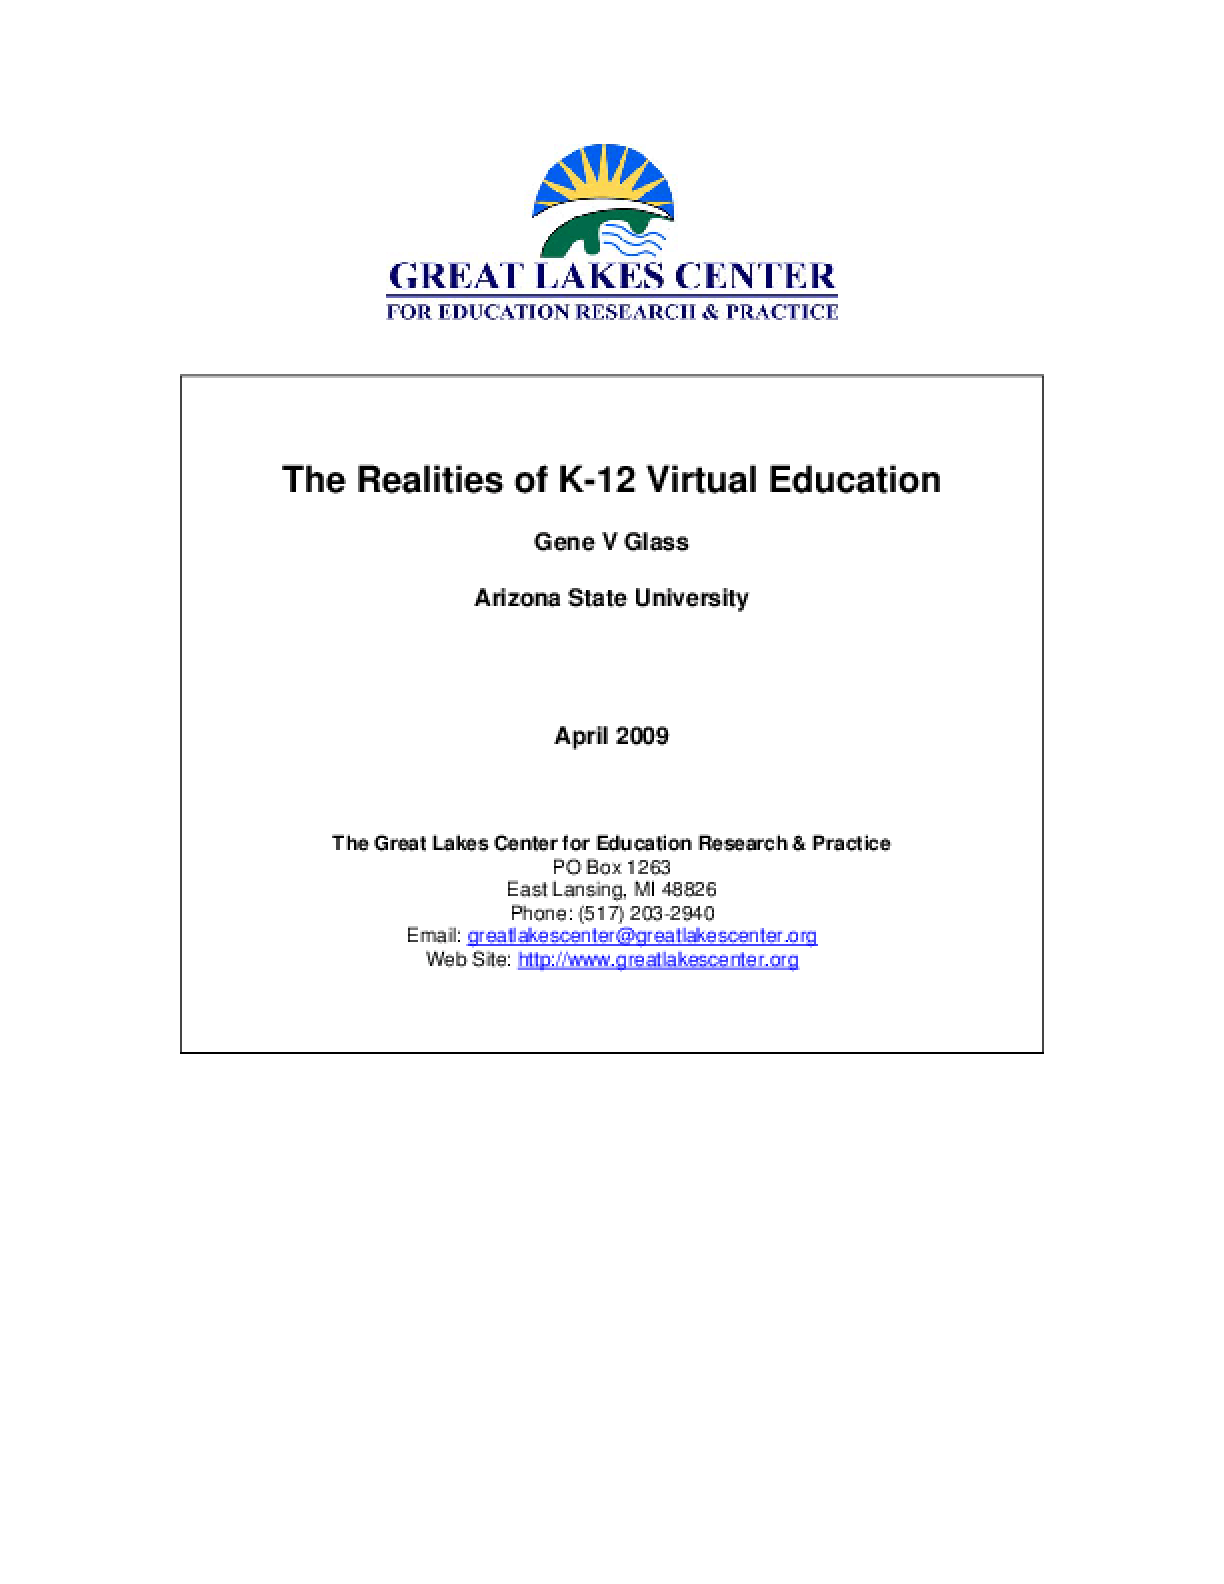 The Realities of K-12 Virtual Education